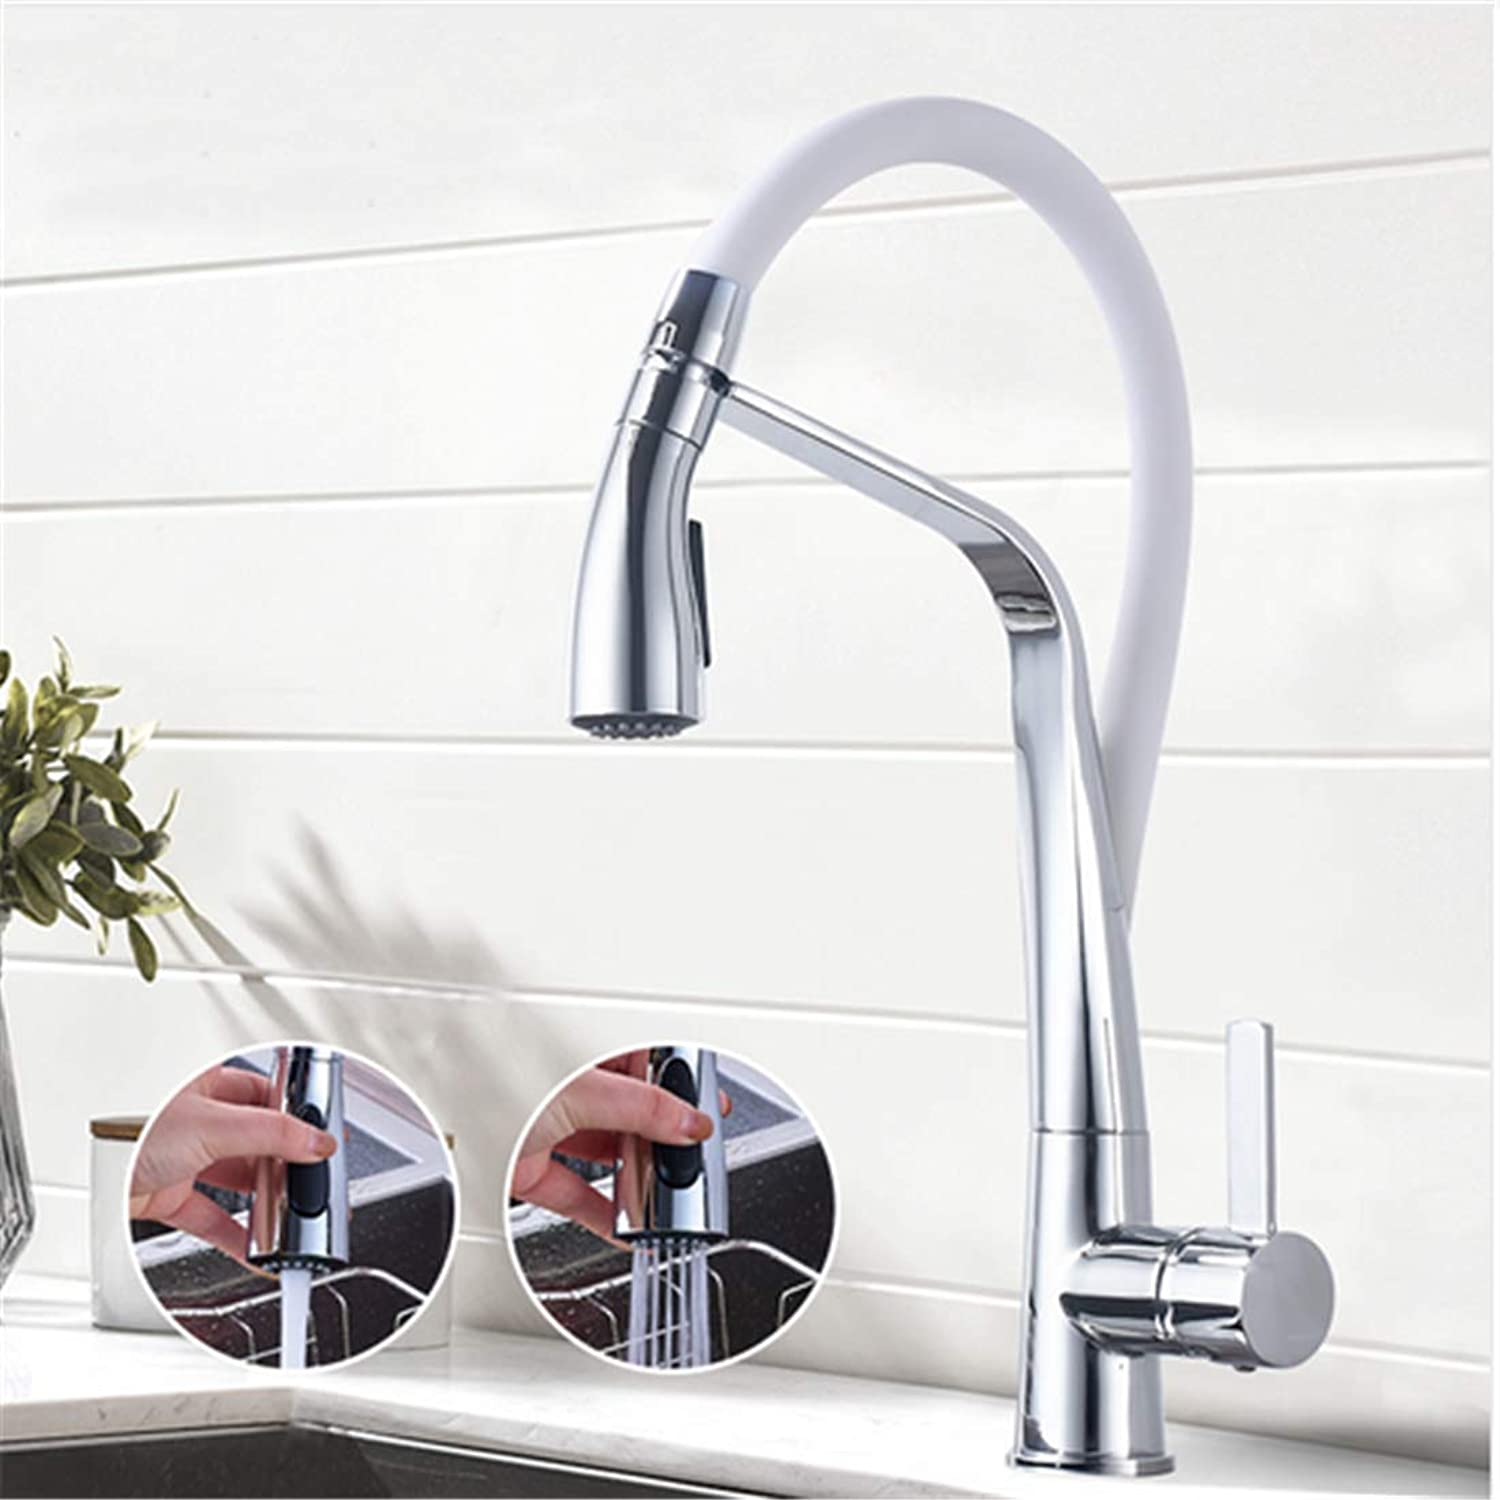 Retro Hot and Cold Faucet Retrochrome Black Kitchen Faucet Deck Mounted Hot Cold Water Mixer